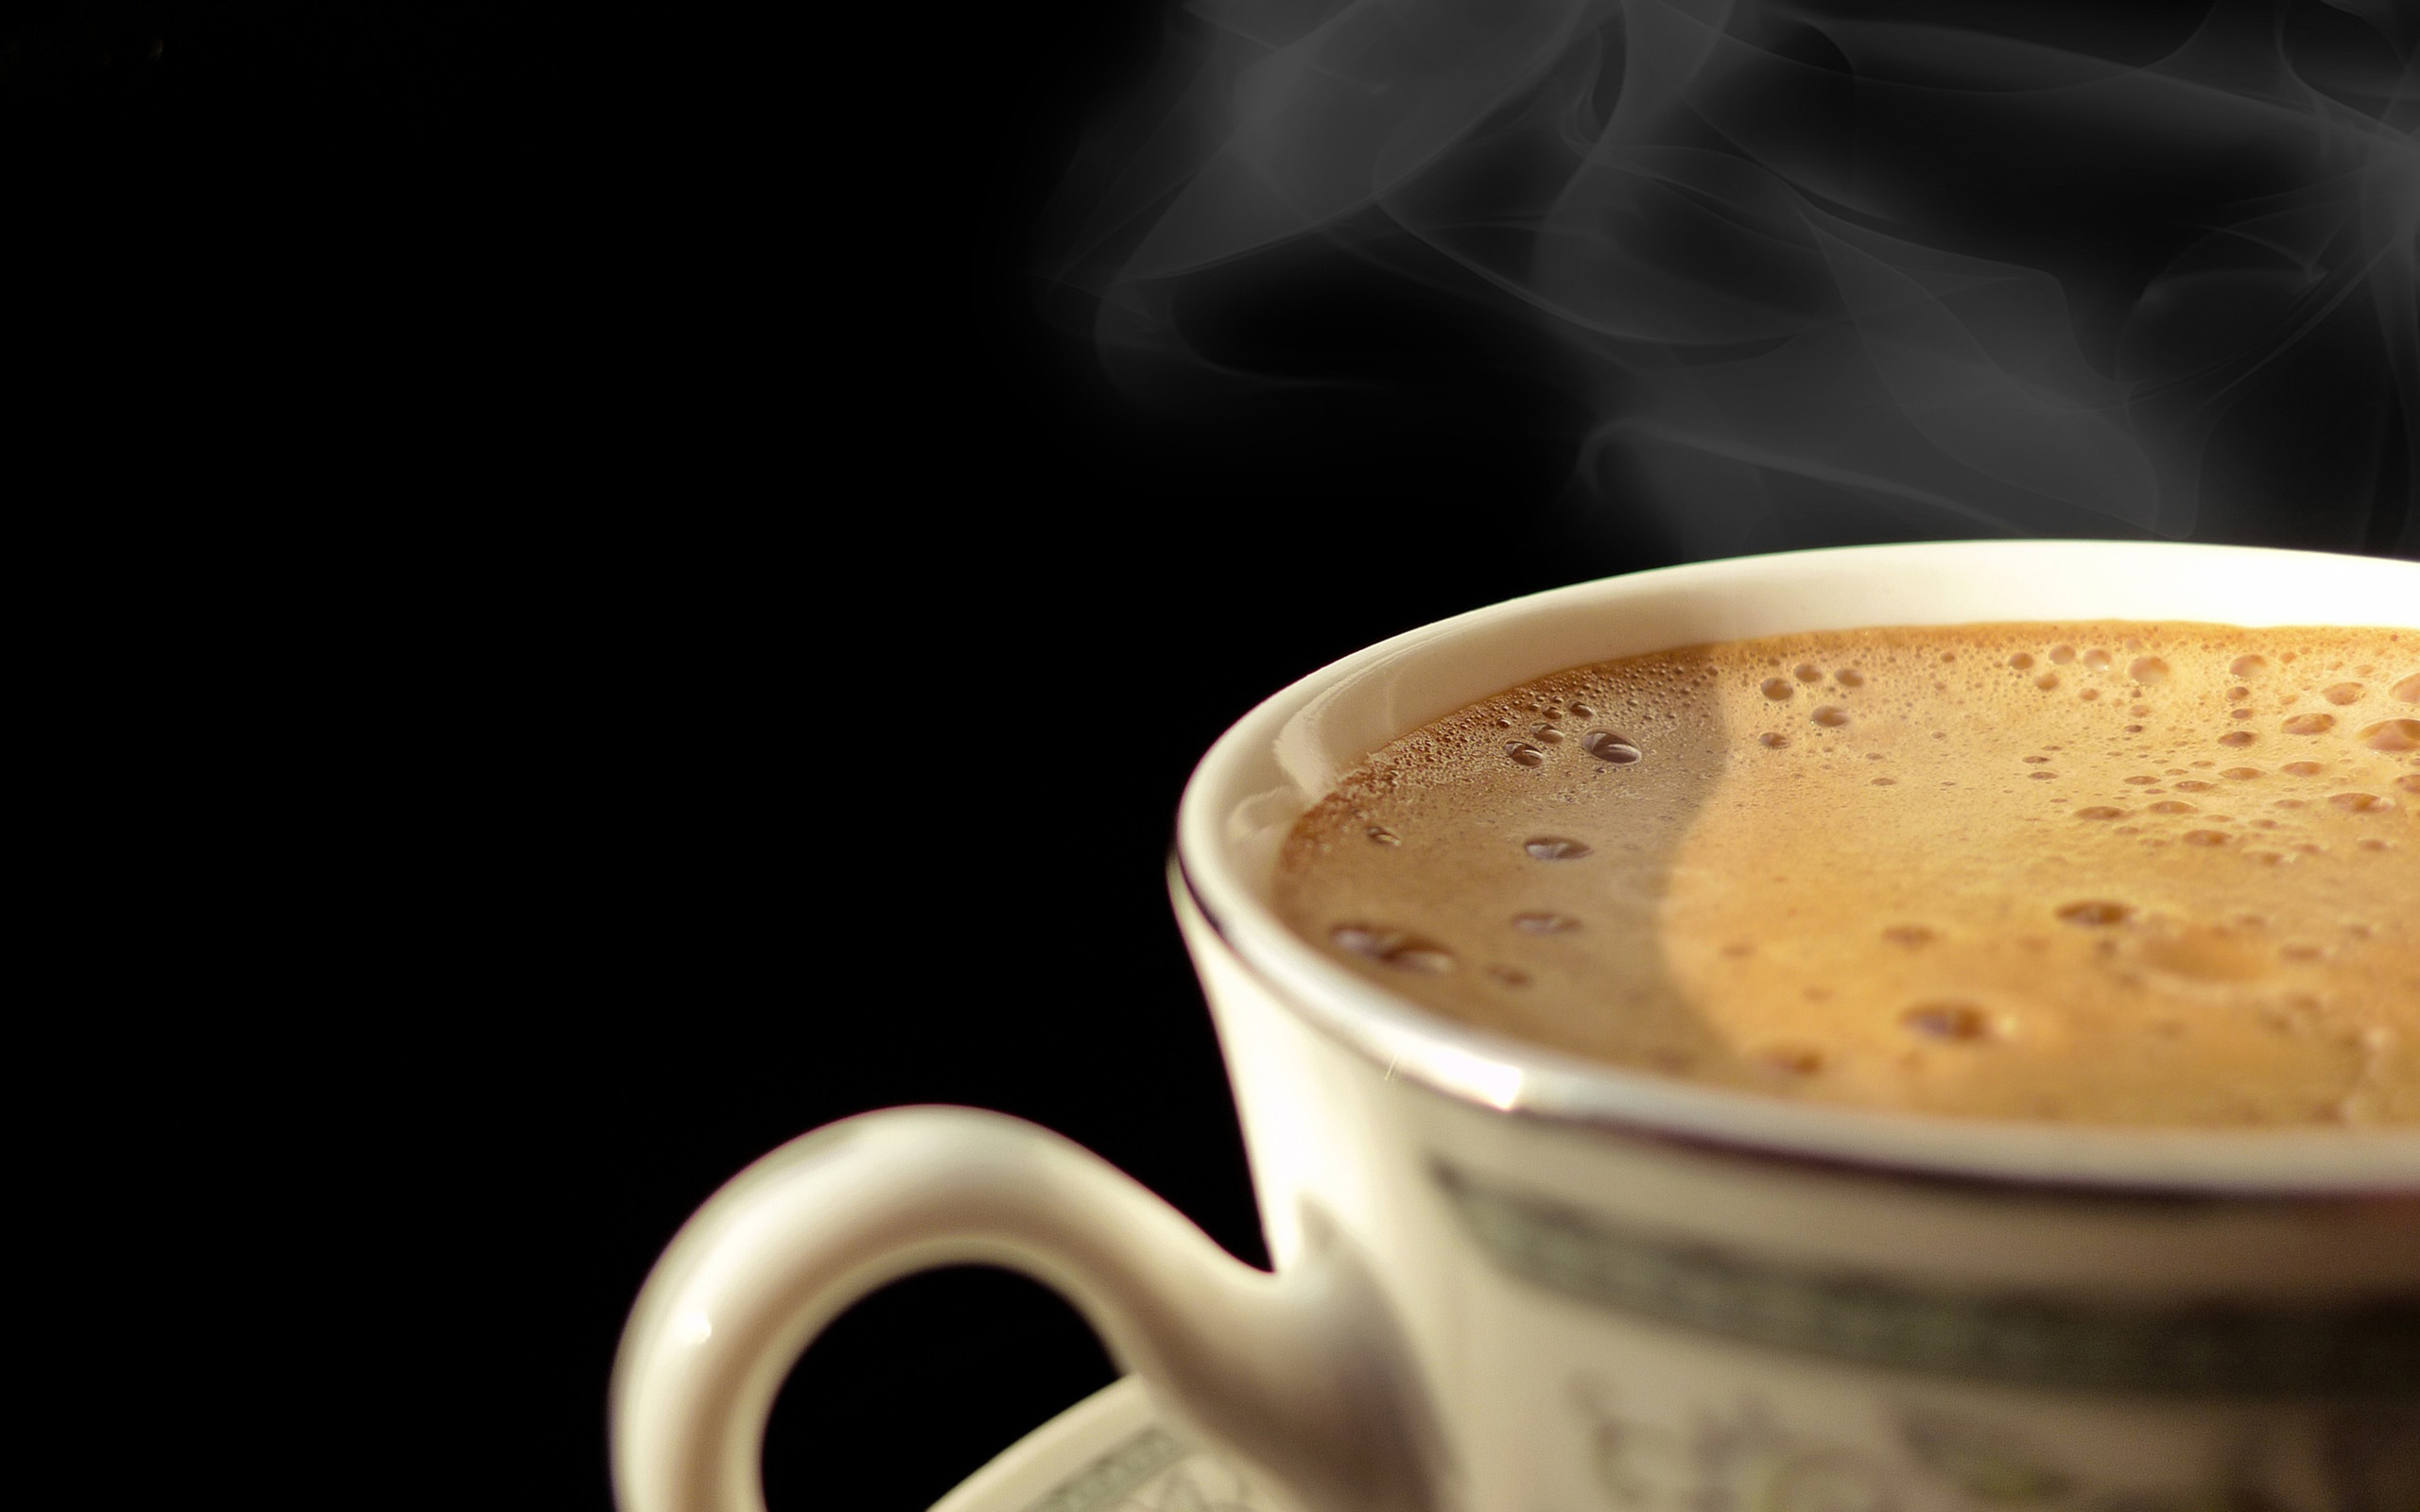 20 Lovely HD Coffee Wallpapers